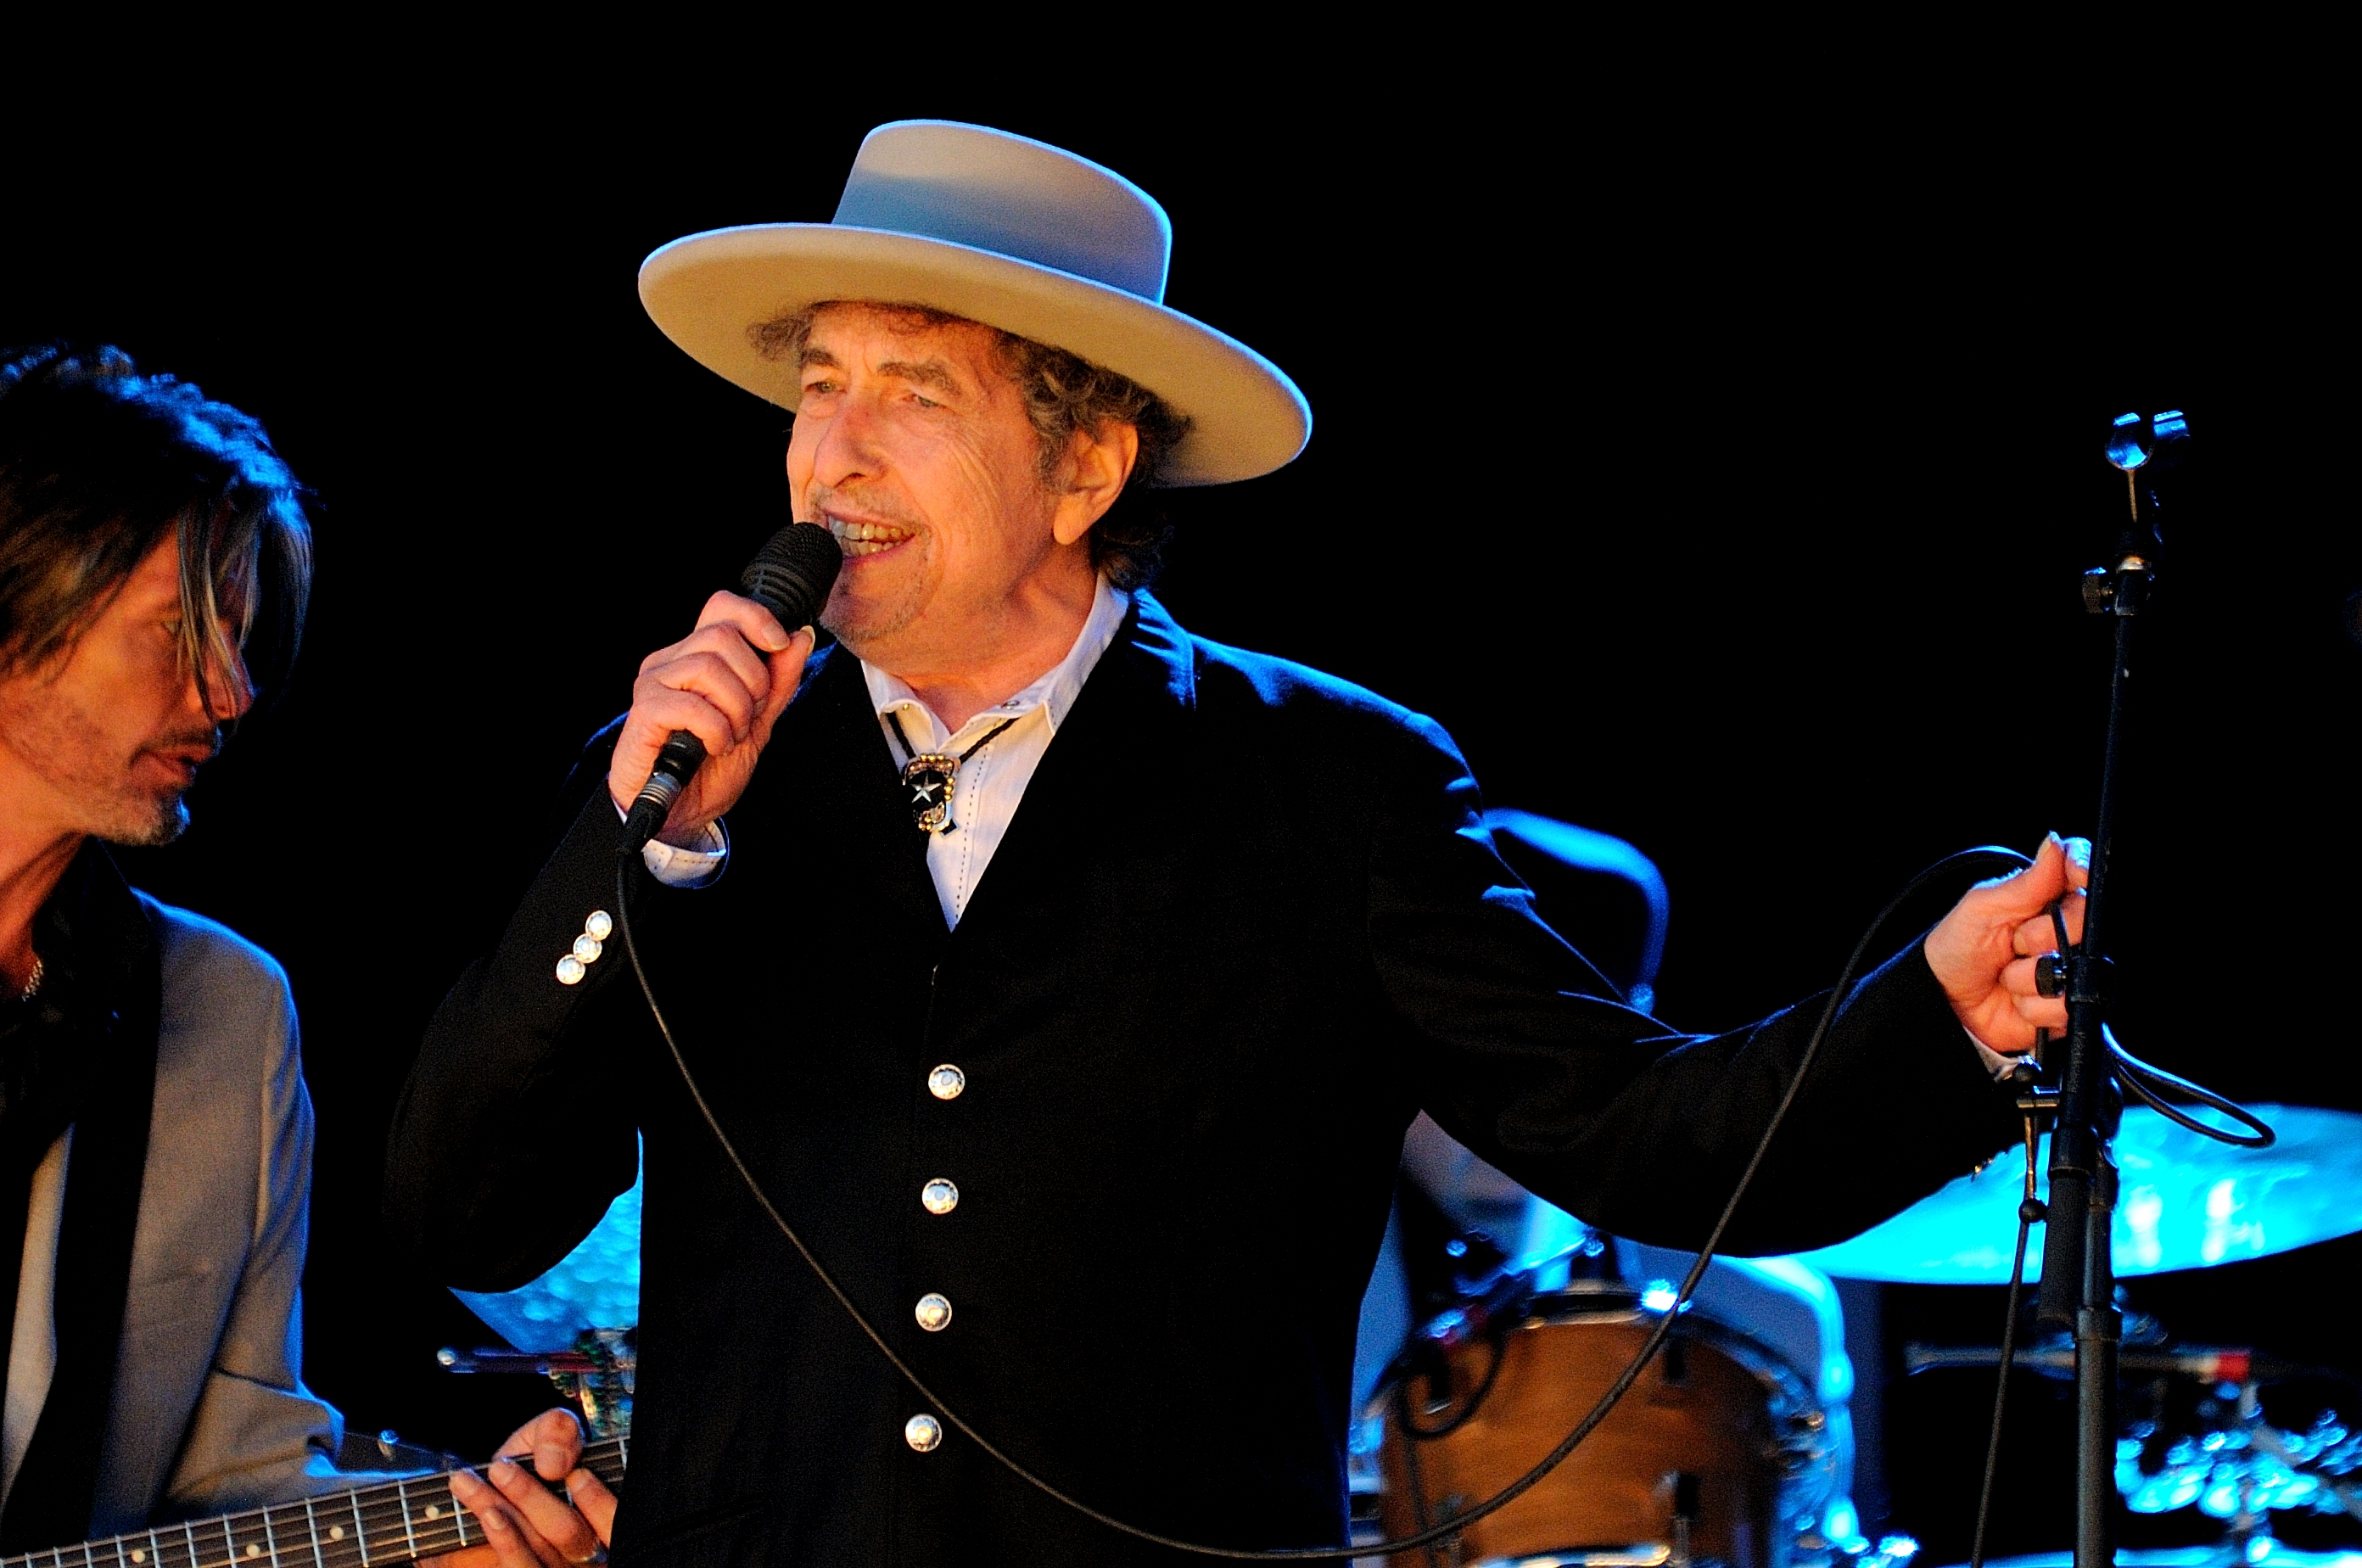 PADDOCK WOOD, UNITED KINGDOM - JUNE 30: Bob Dylan performs on stage during Hop Farm Festival at Hop Farm Family Park on June